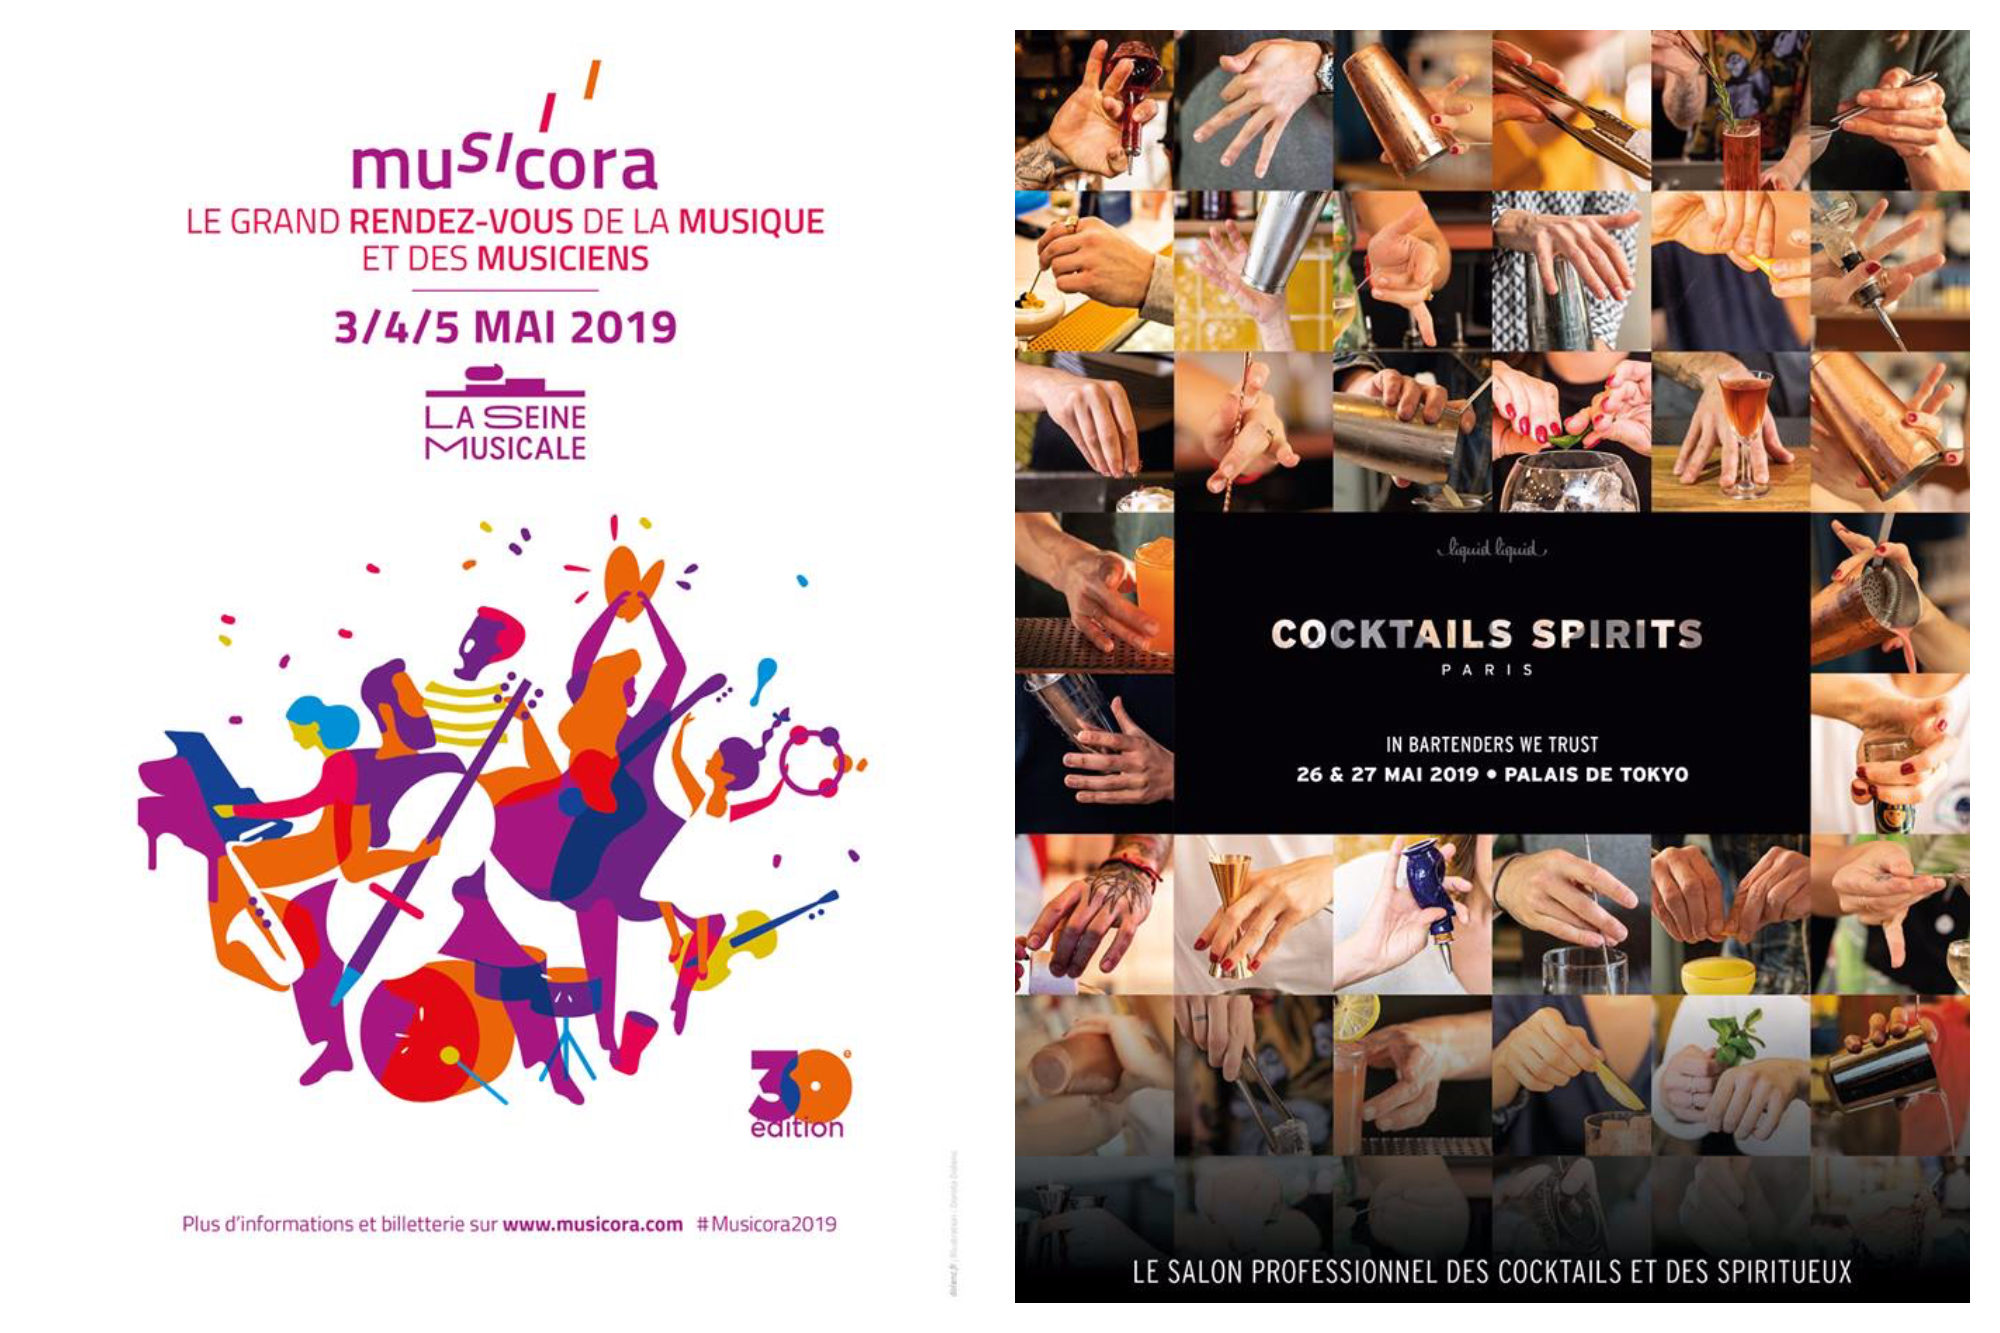 May in Paris also marks the 30th anniversary of Musicora, a three-day music event at La Villette (left). A cocktails festival in Paris in May (right).